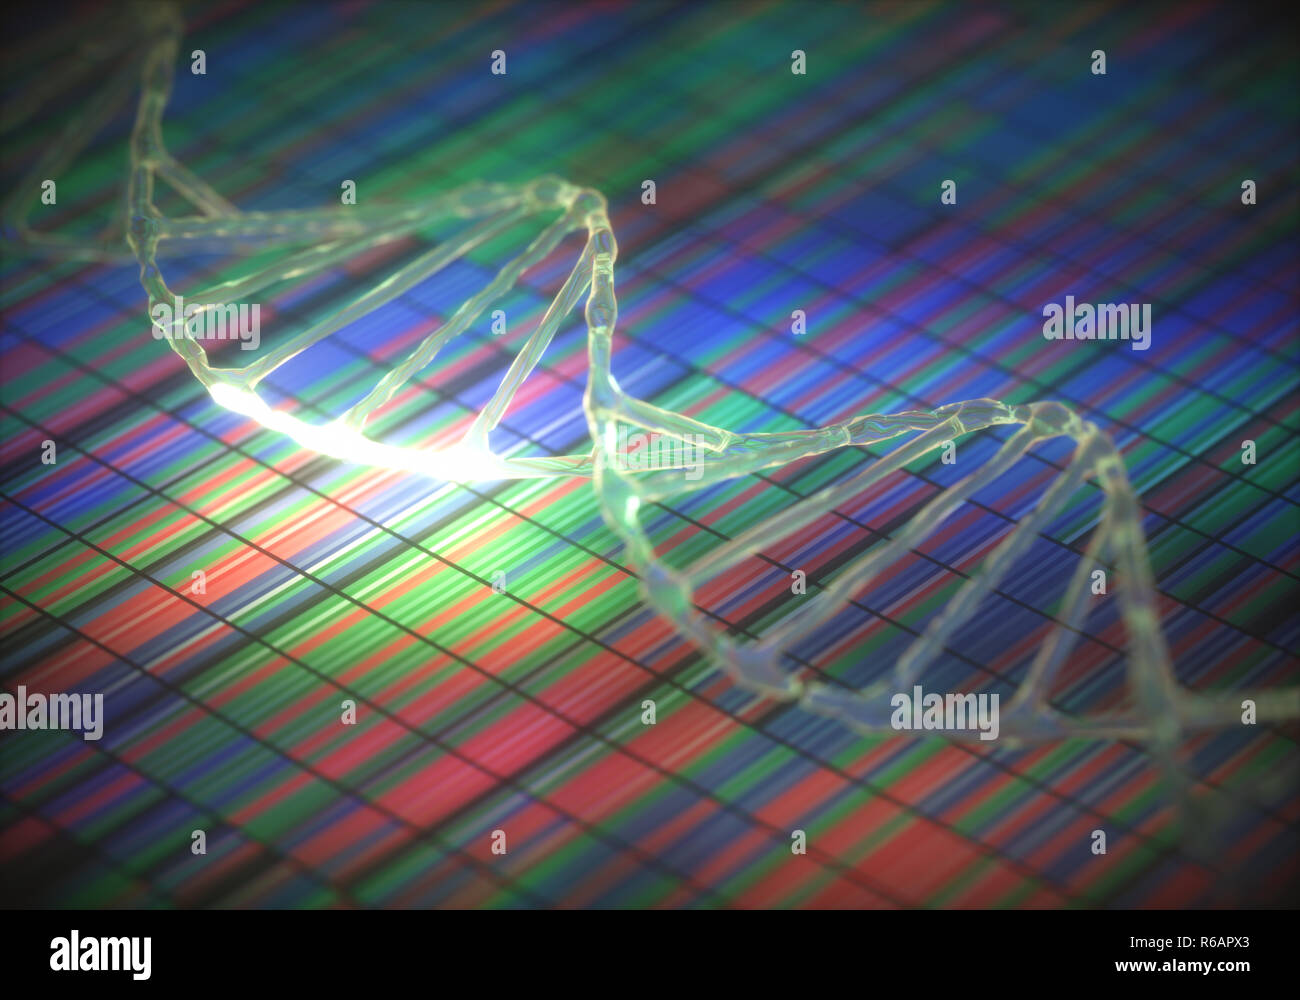 DNA Code Sequence - Stock Image